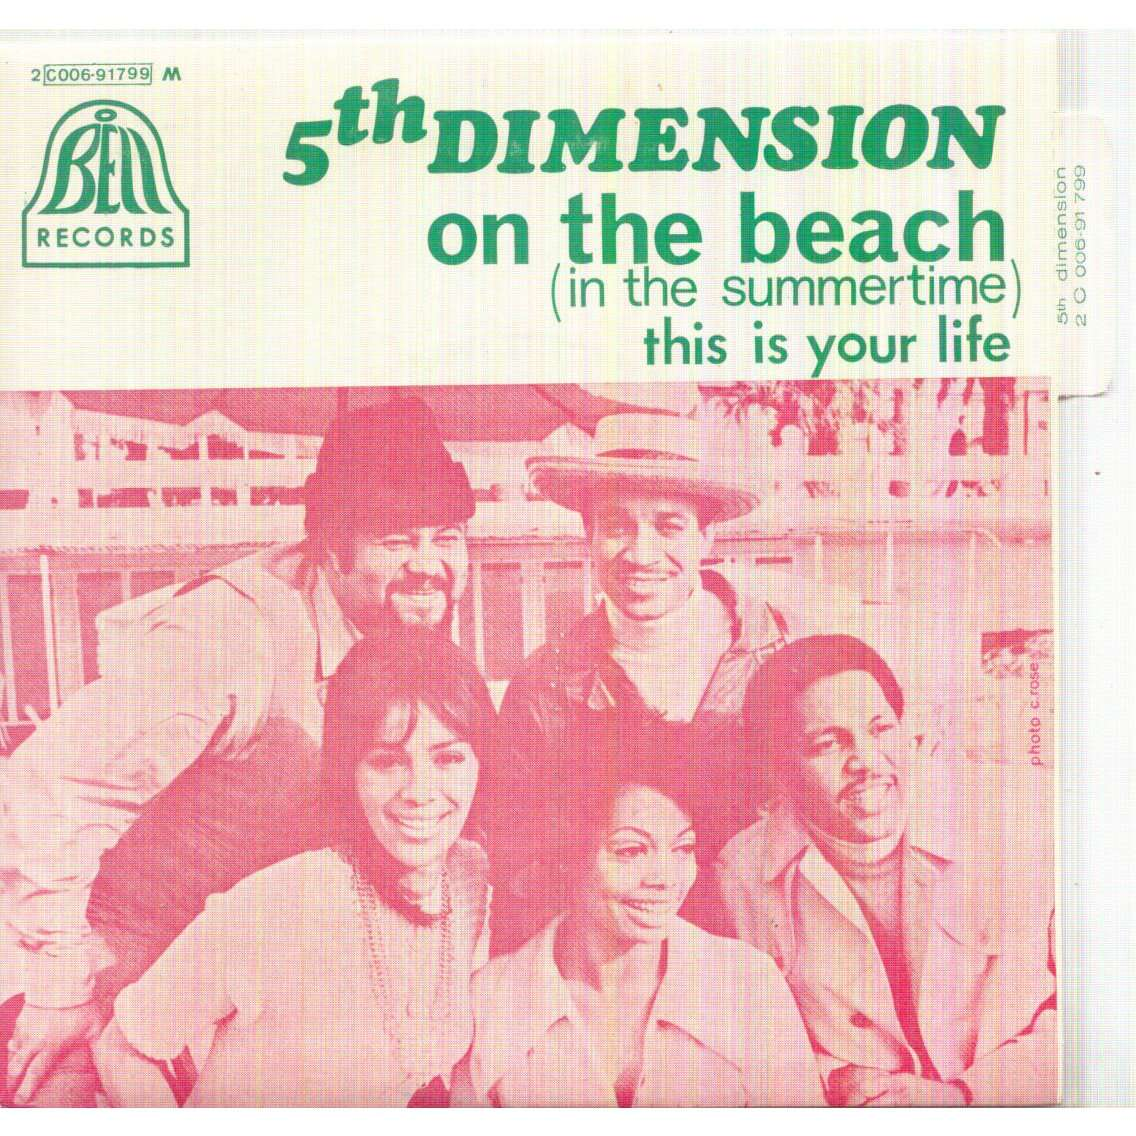 5TH DIMENSION ON THE BEACH (IN THE SUMMERTIME) / THIS IS YOUR LIFE